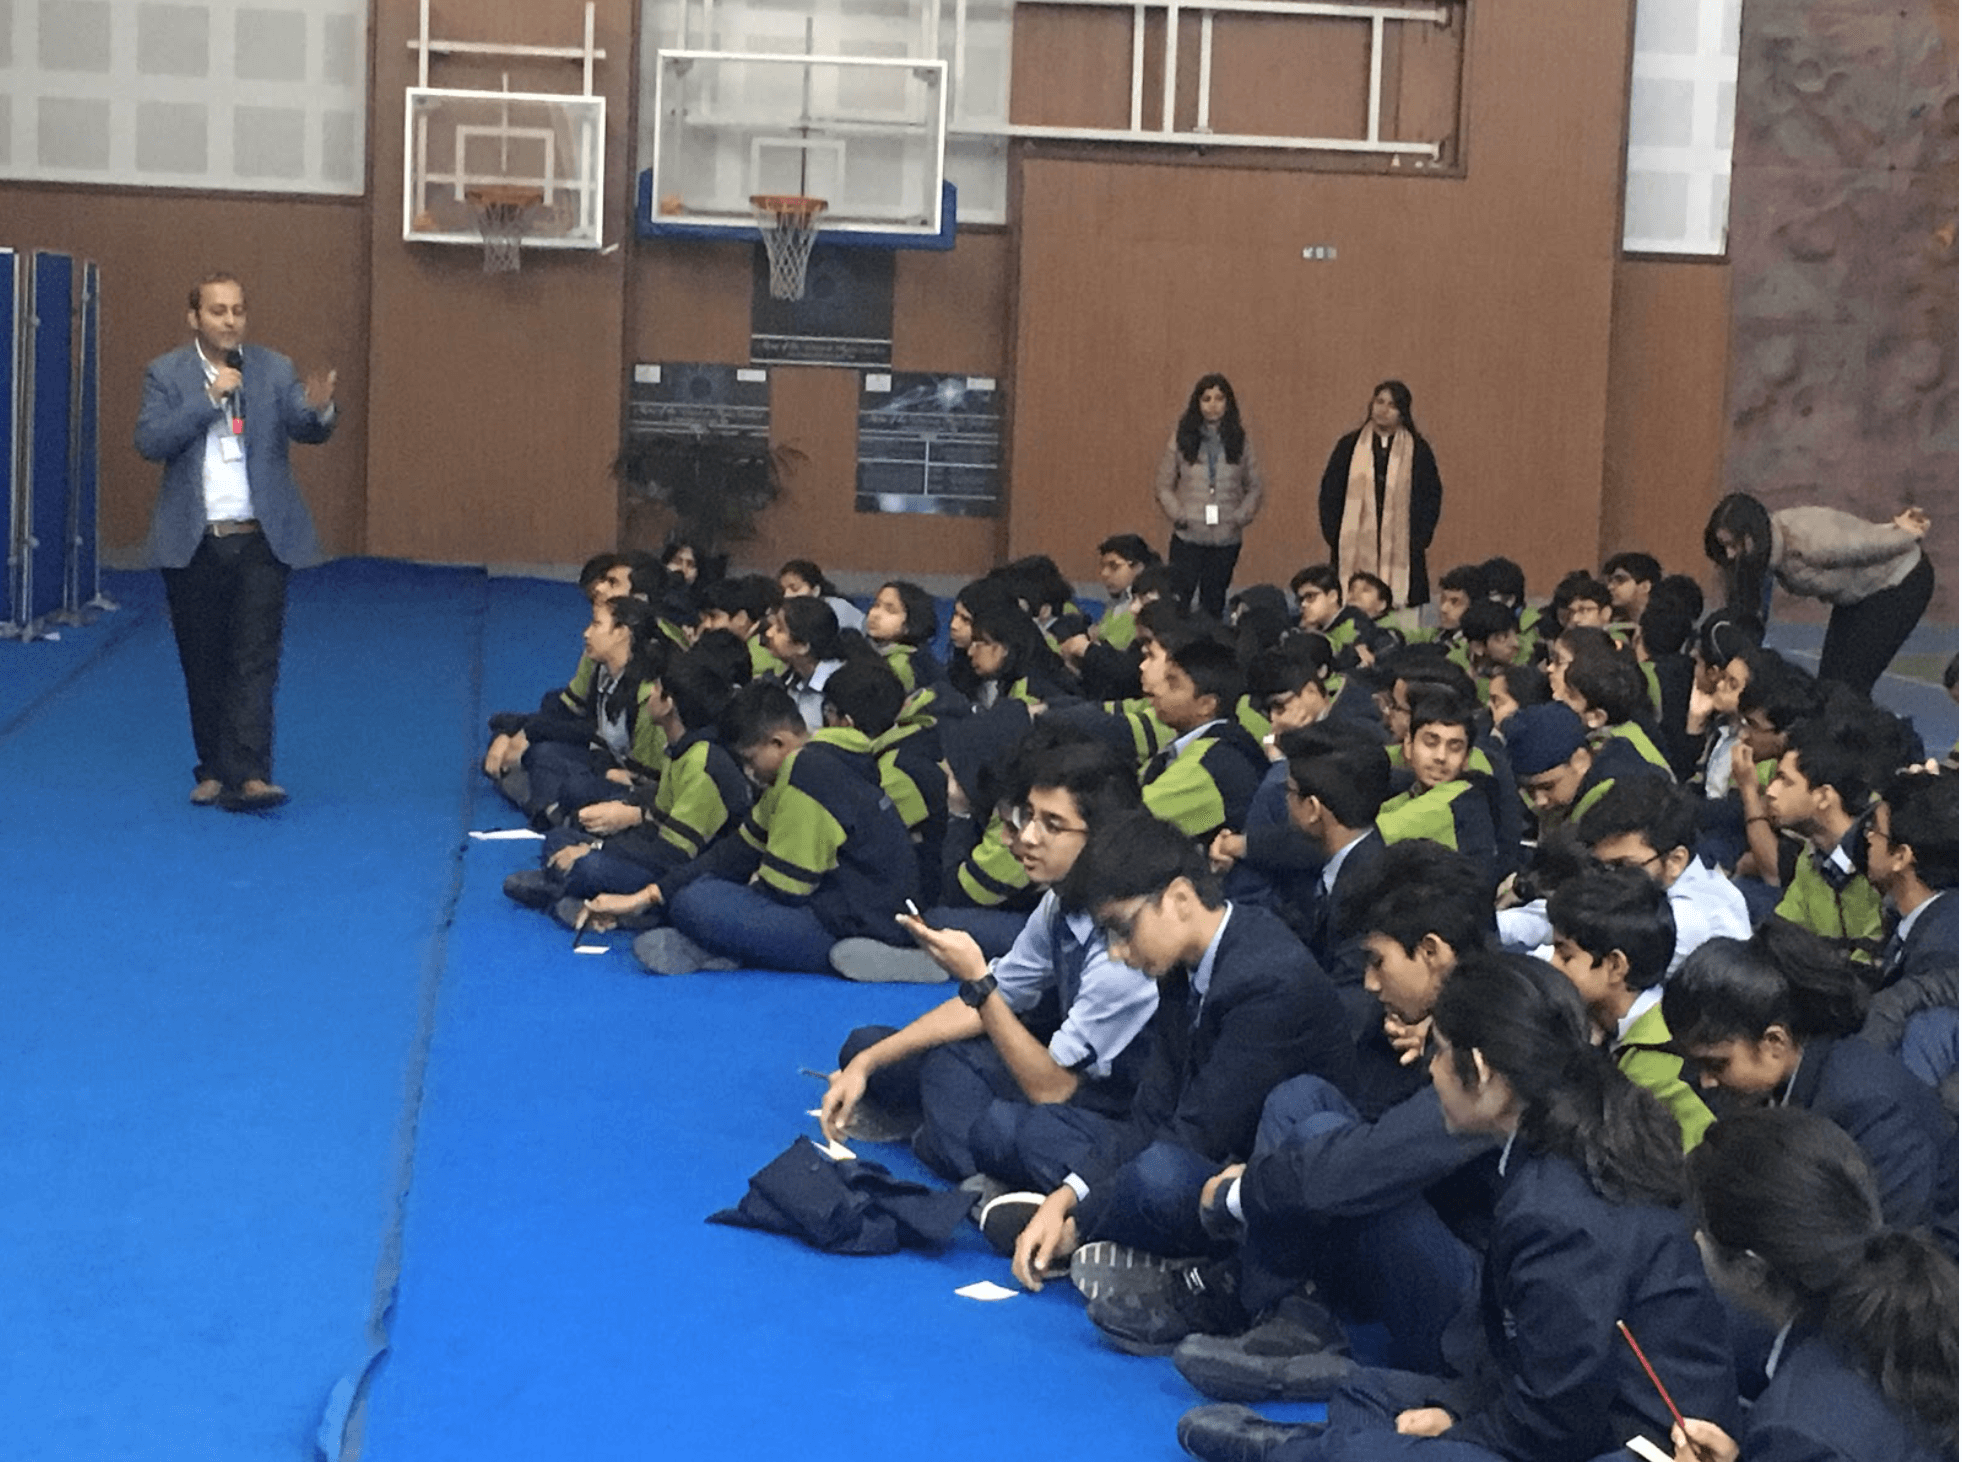 Sachin Gaur's discussion with students about Cyber security at Shiv Nadar School, Noida